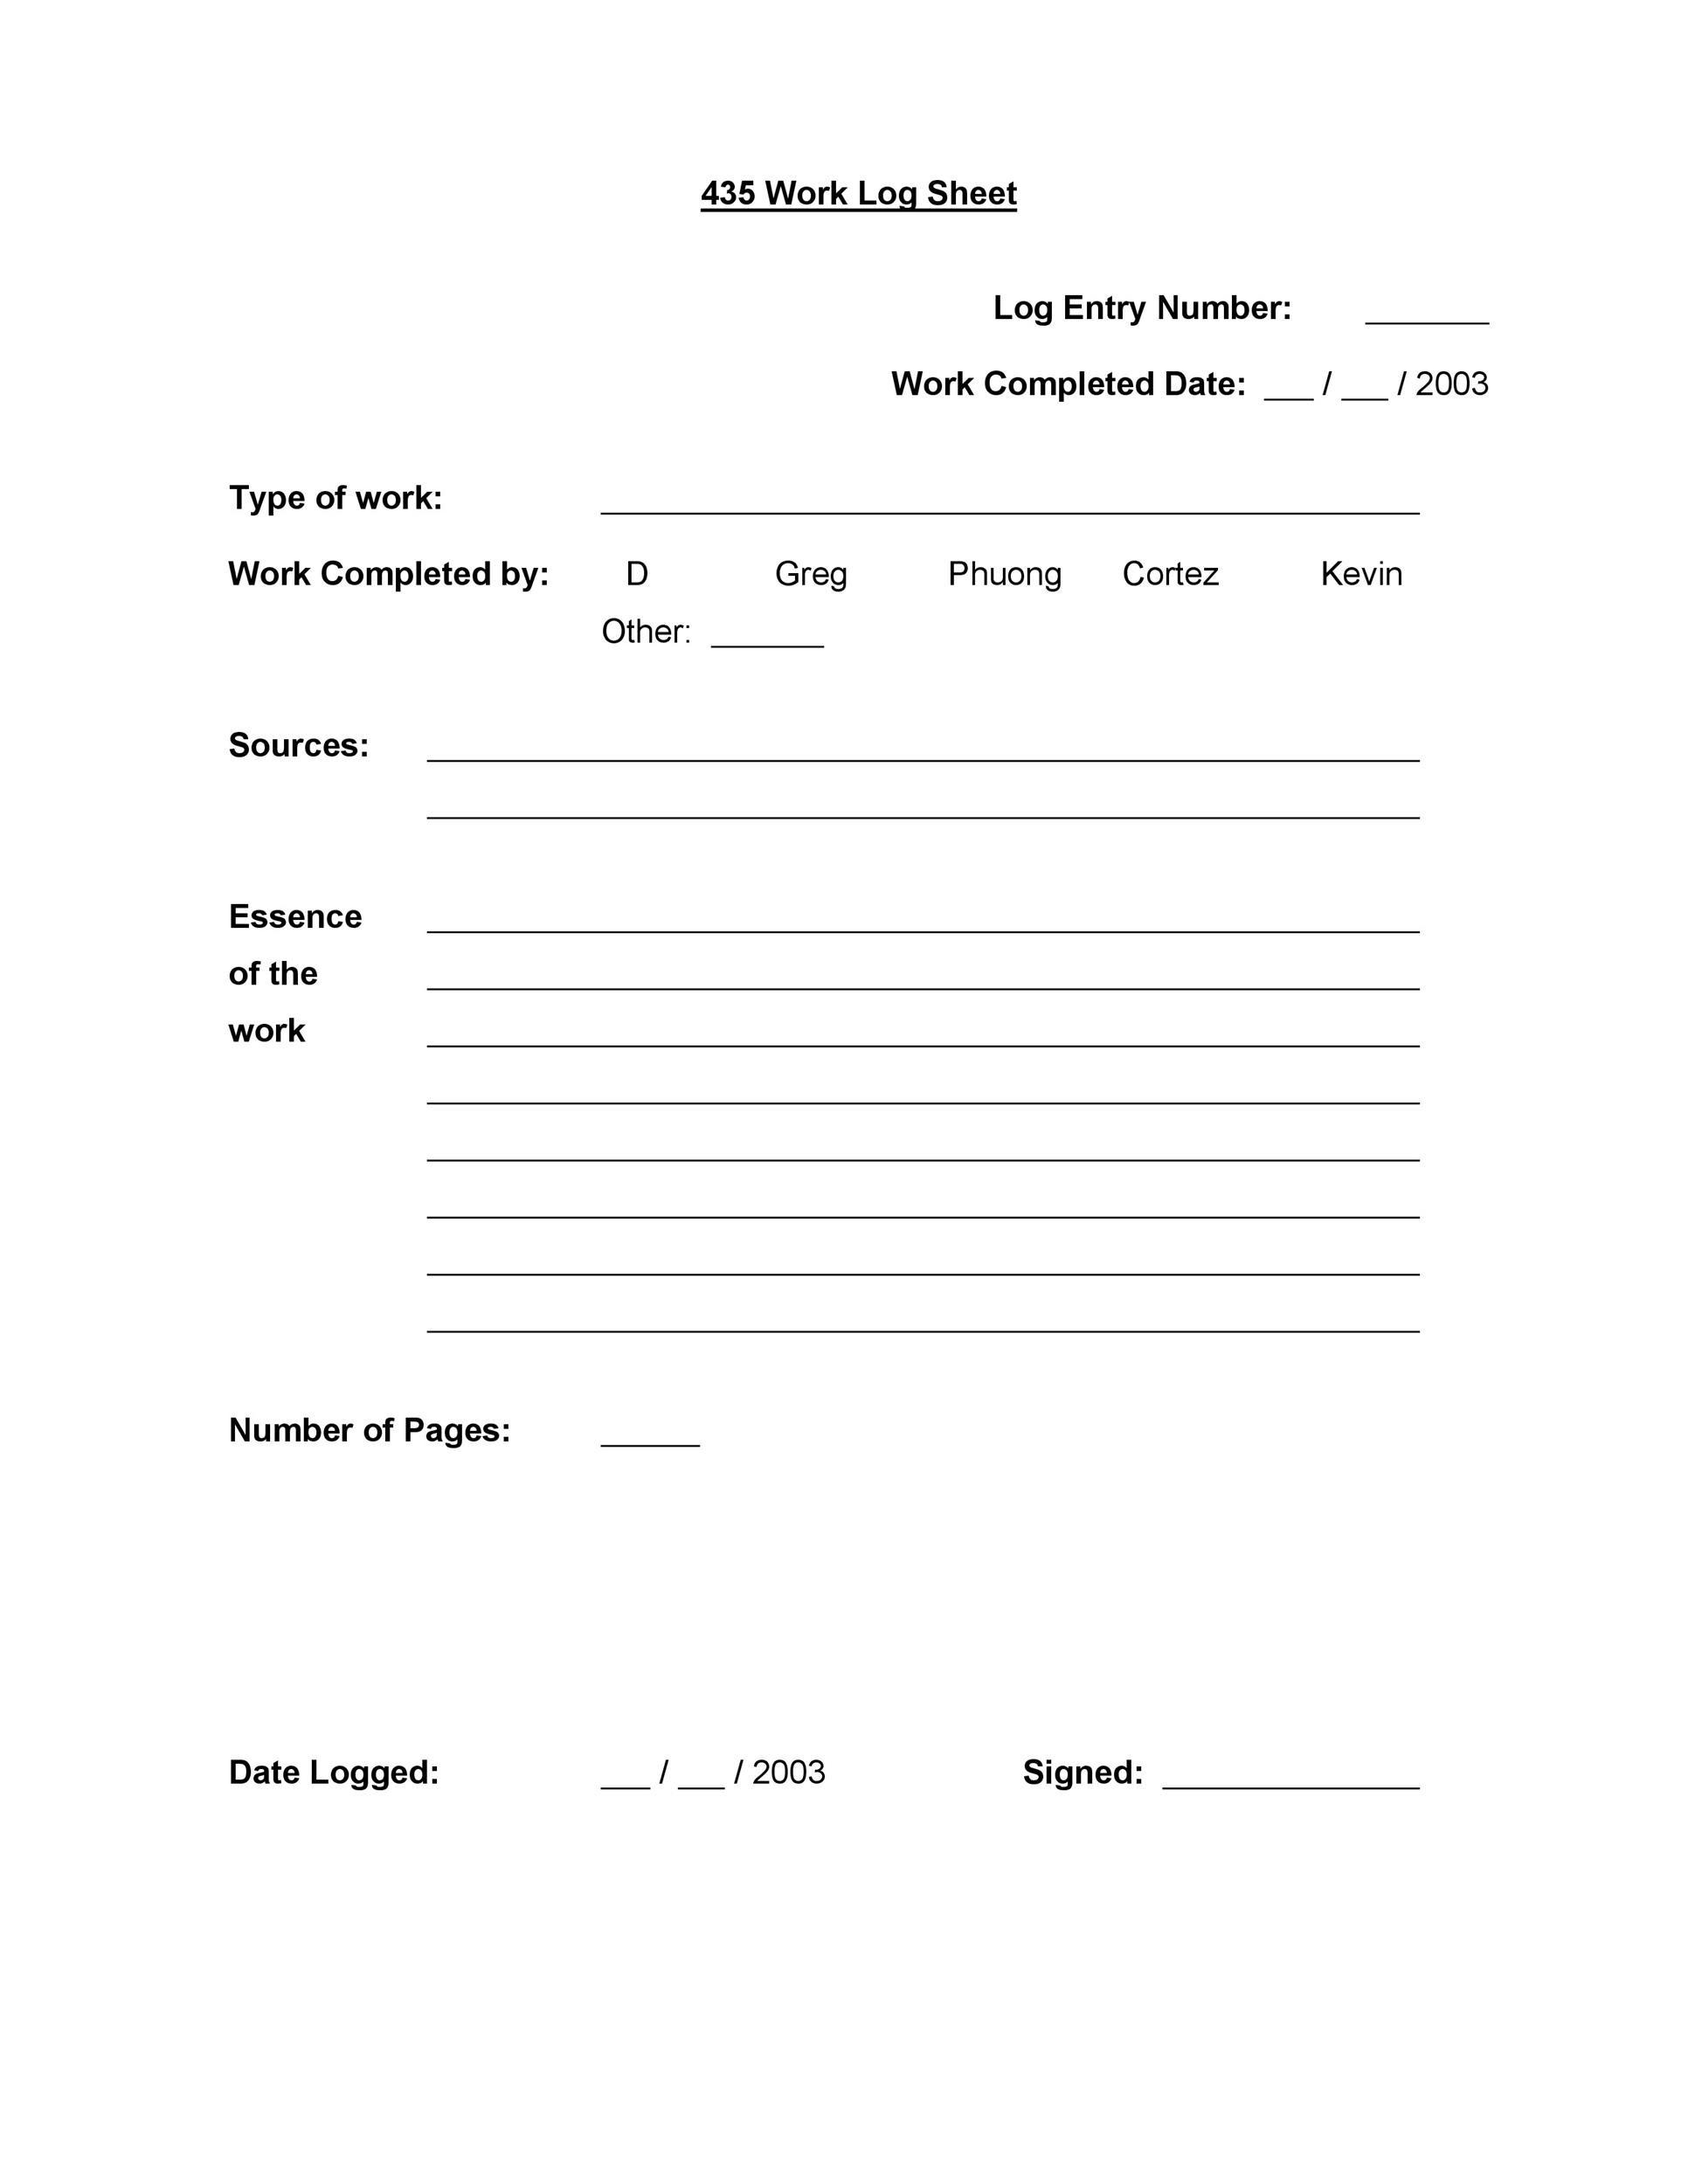 50 Printable Log Sheet Templates Direct Download ᐅ Template Lab